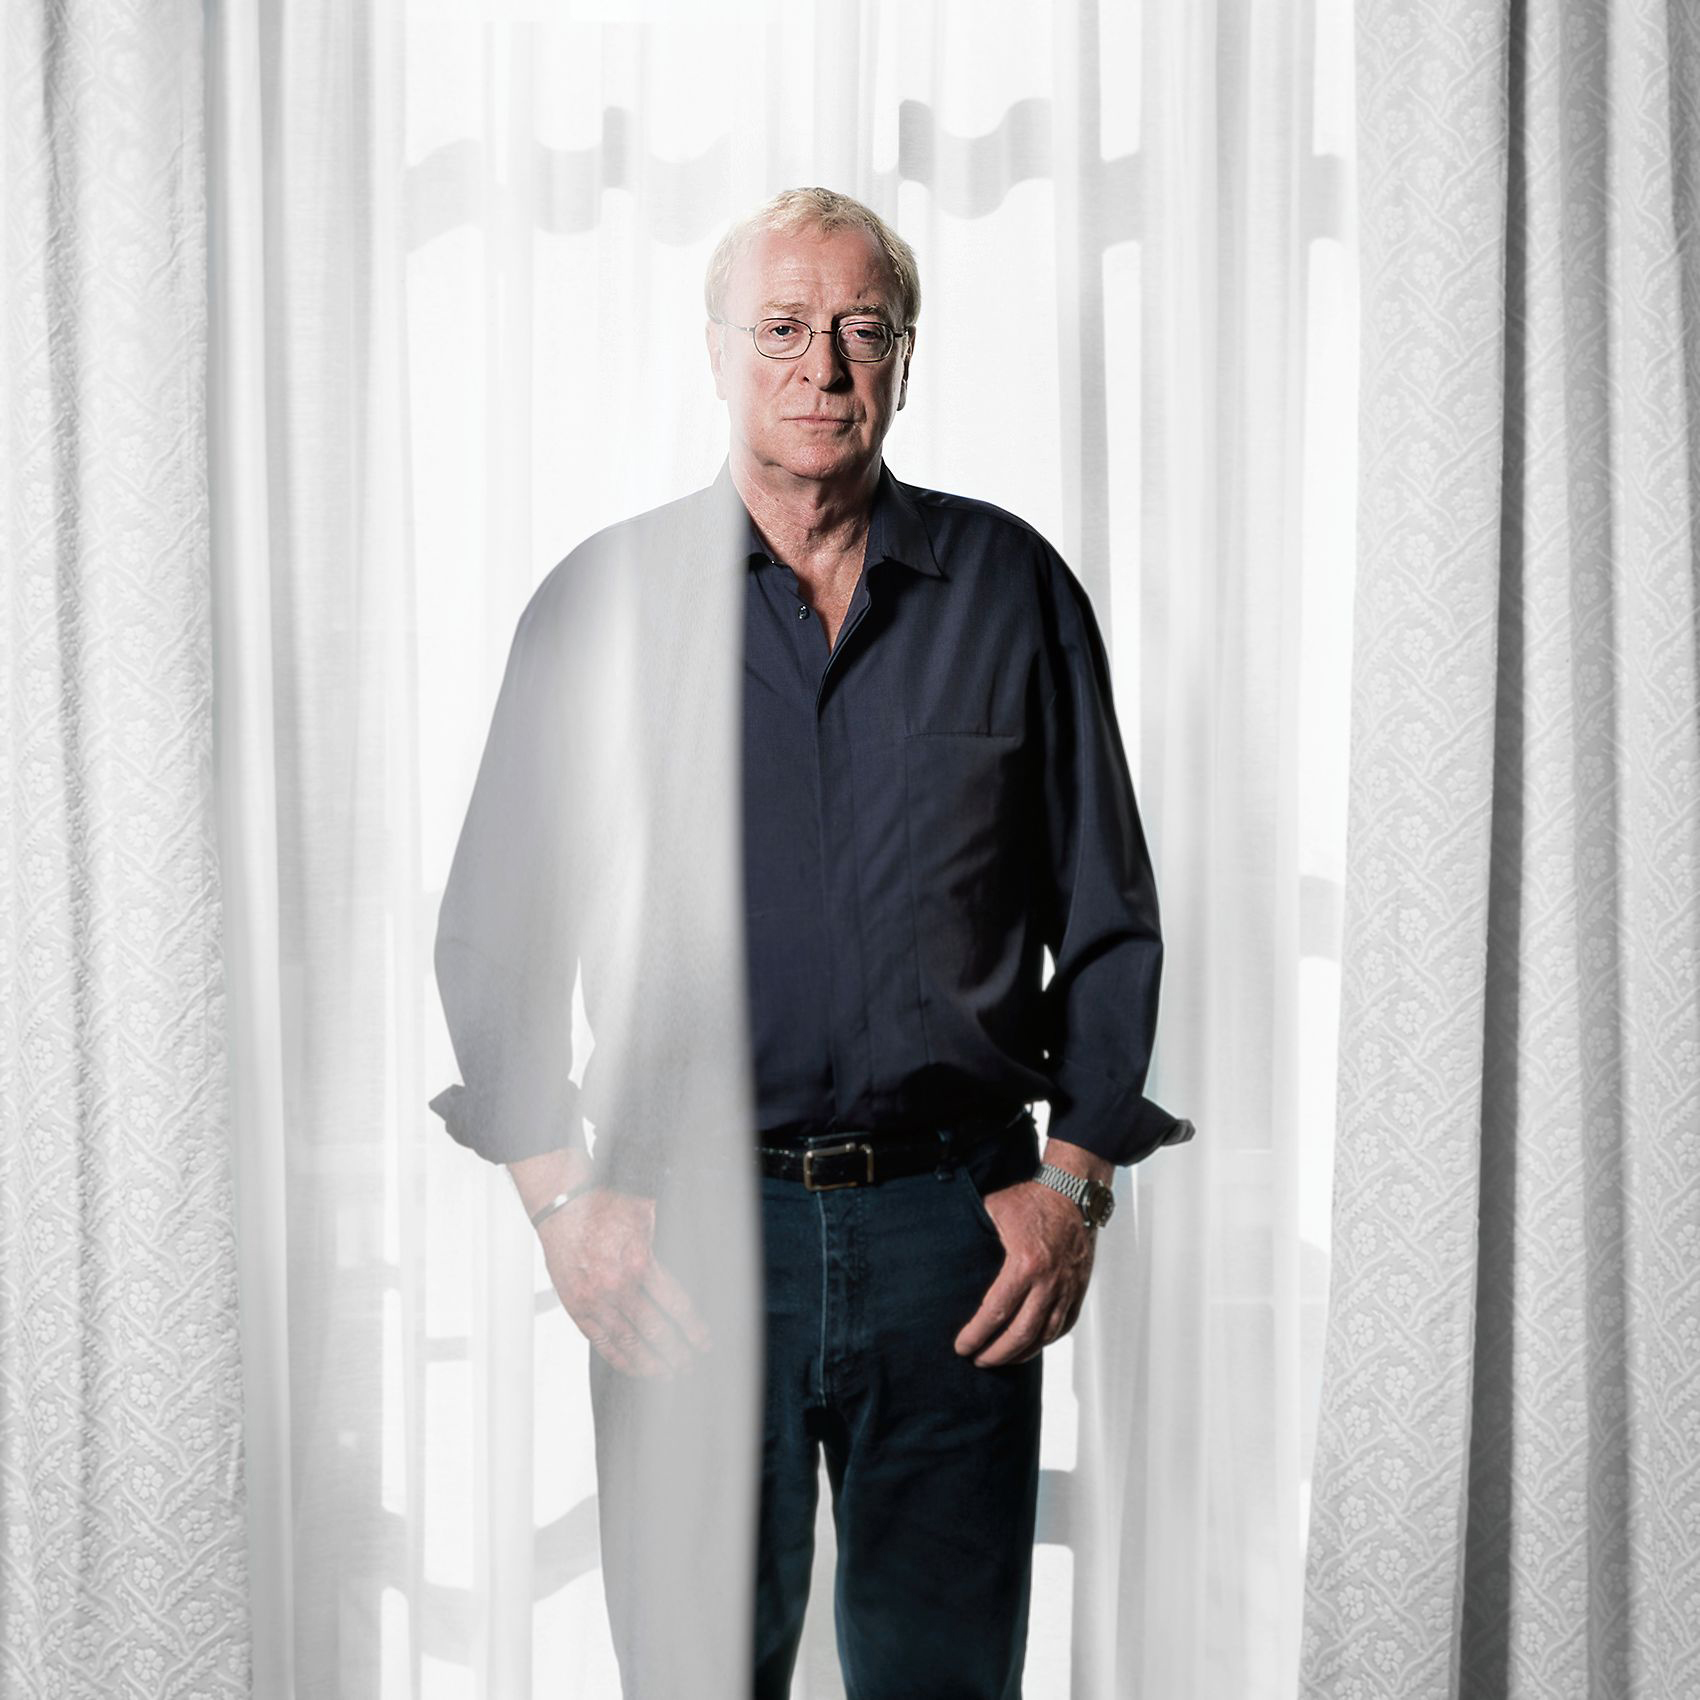 actor-michael-caine-poses-for-a-portrait-at-the-toronto-international-film-festival